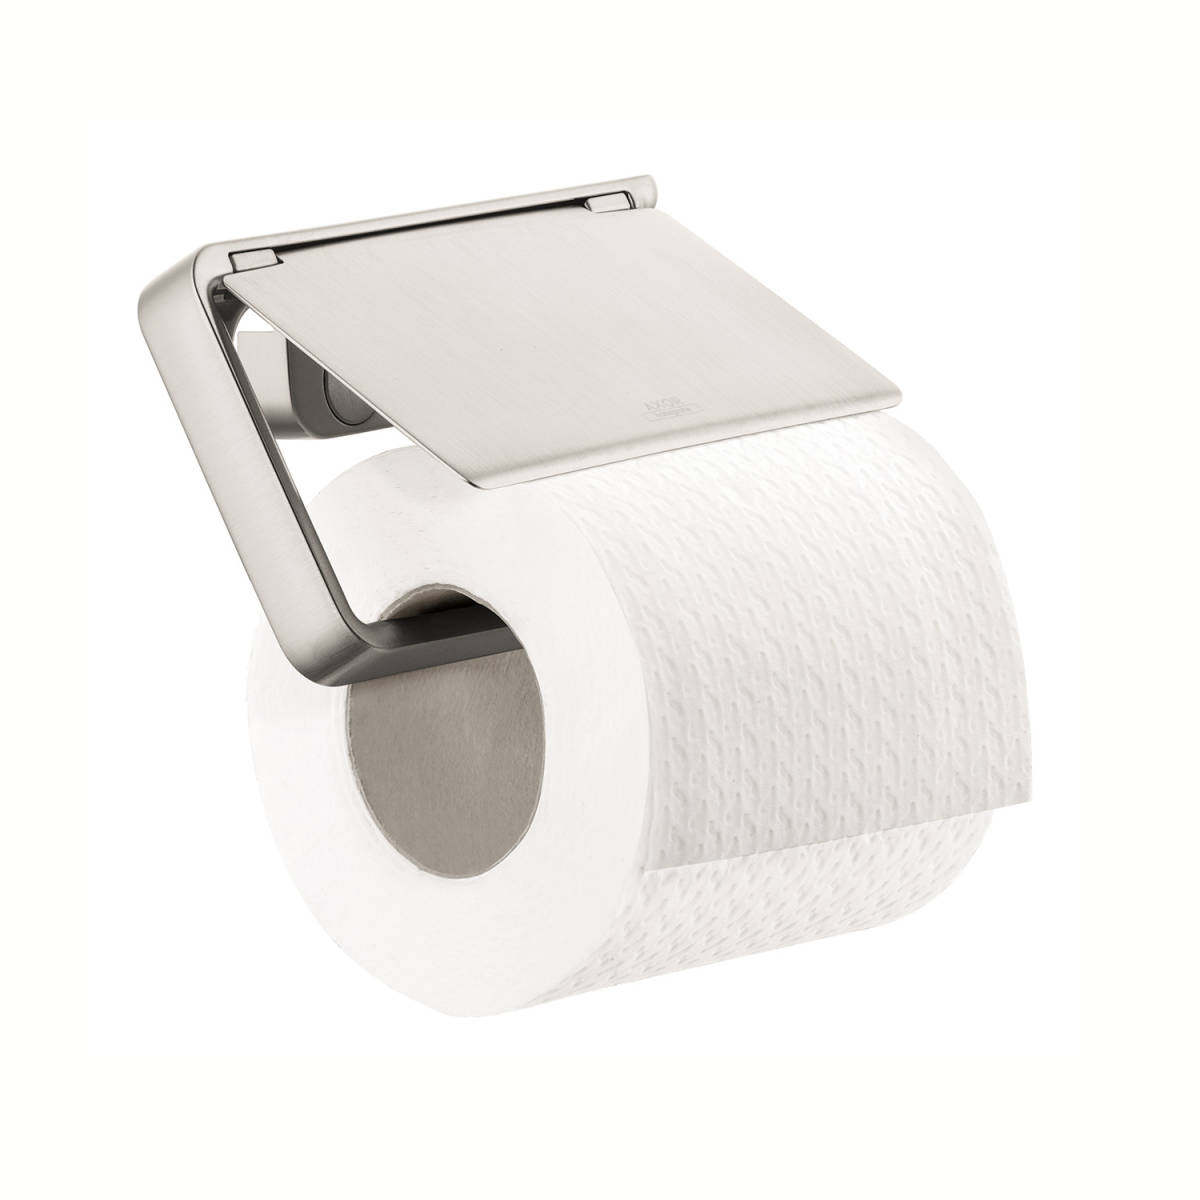 Roll holder with cover, Brushed Nickel, 42836820